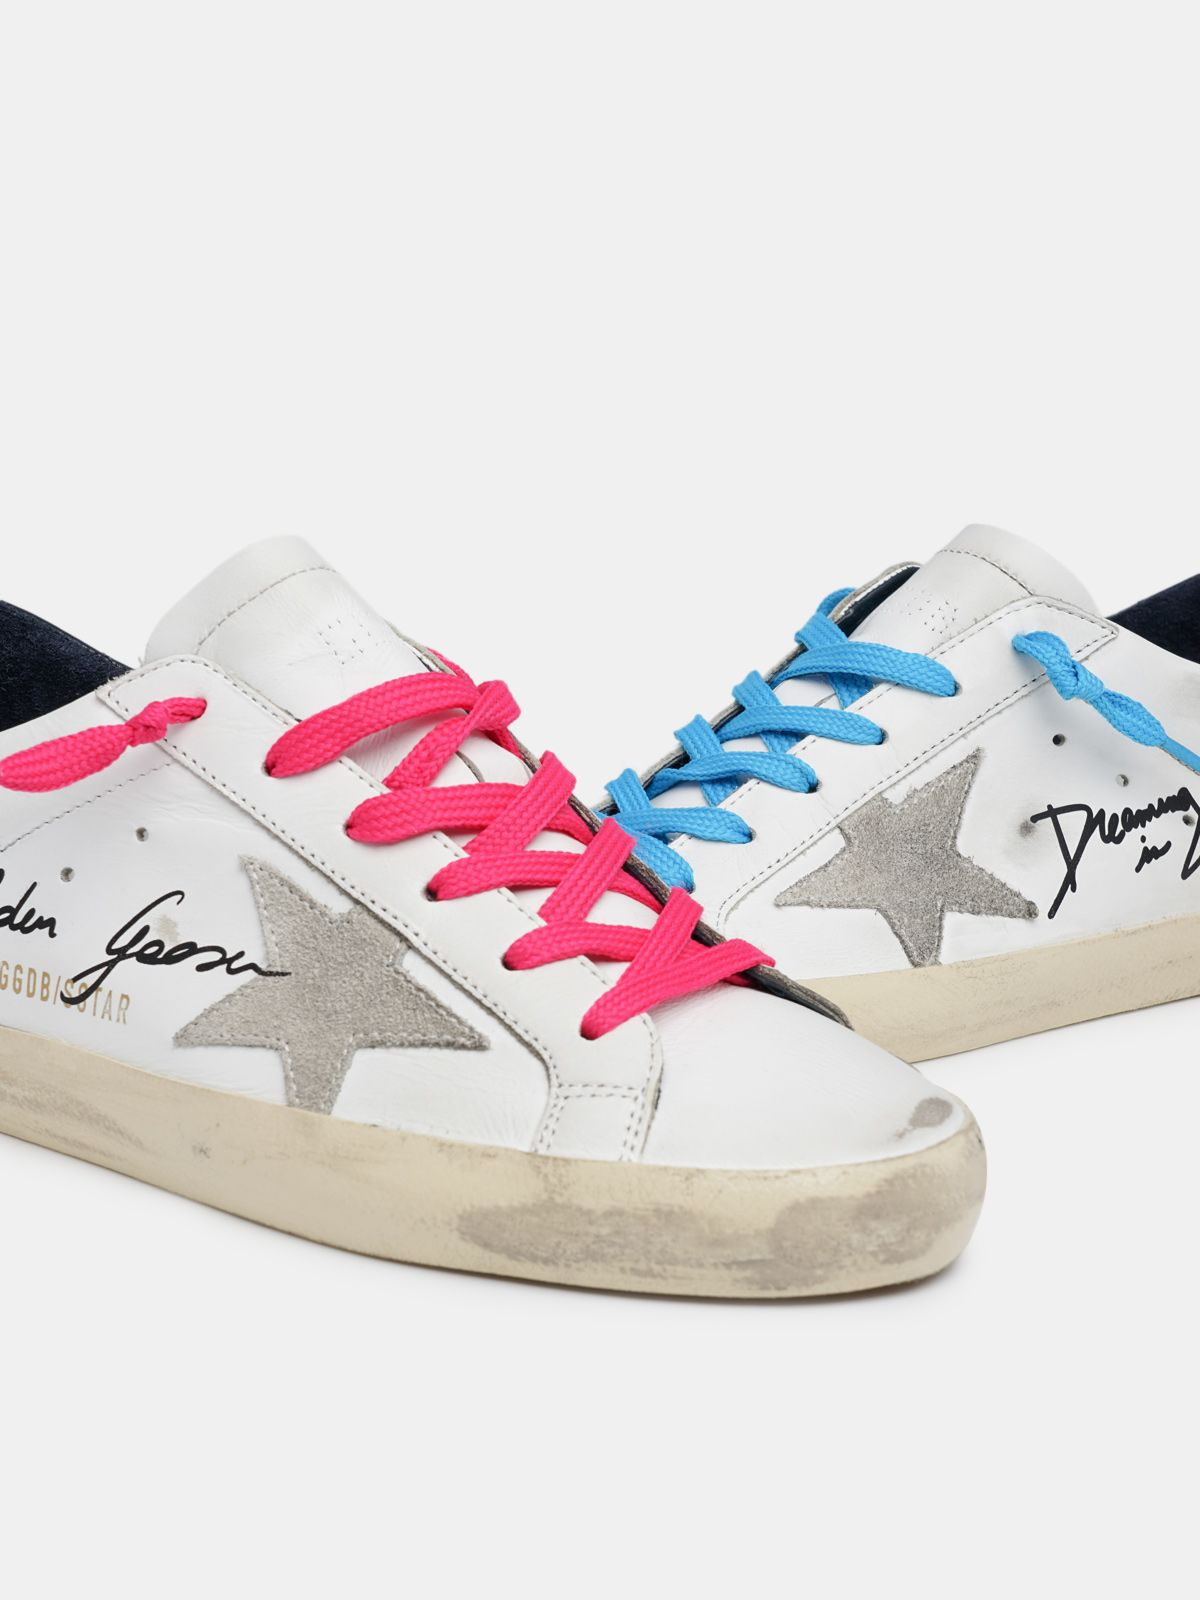 Golden Goose - Super-Star sneakers with handwritten Dreaming in Venice lettering in